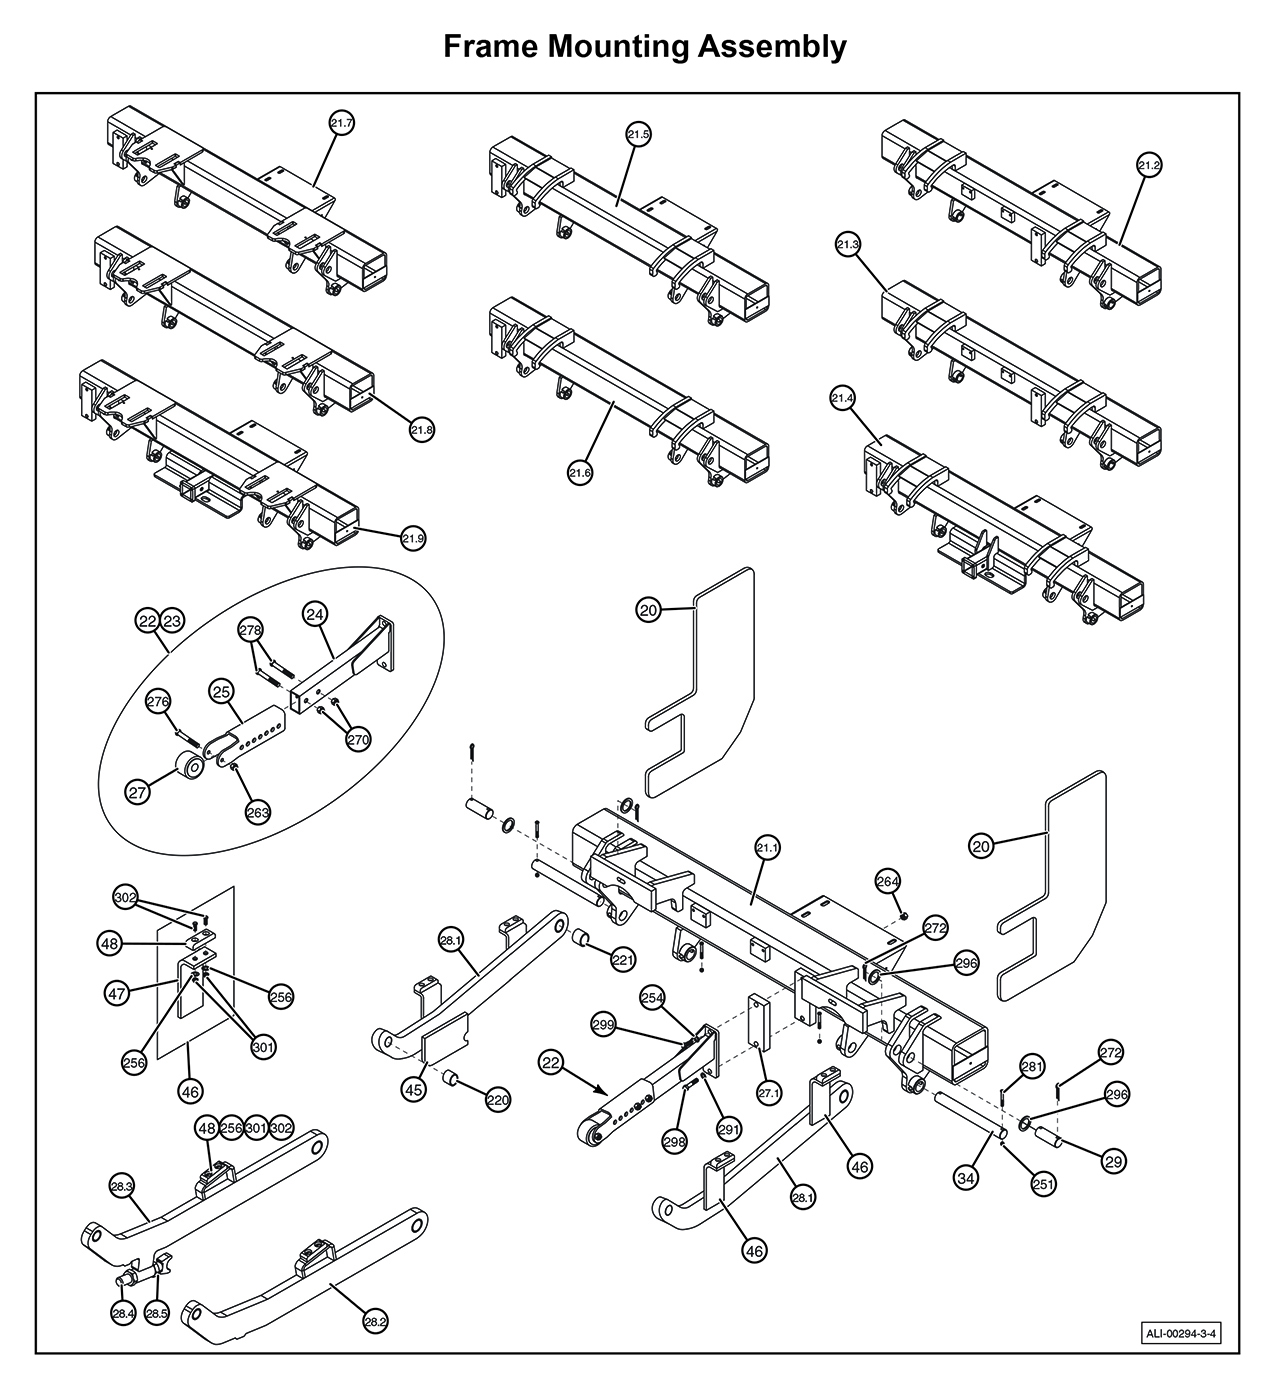 MTU-GLR-3-4 Frame Mounting Assembly Diagram